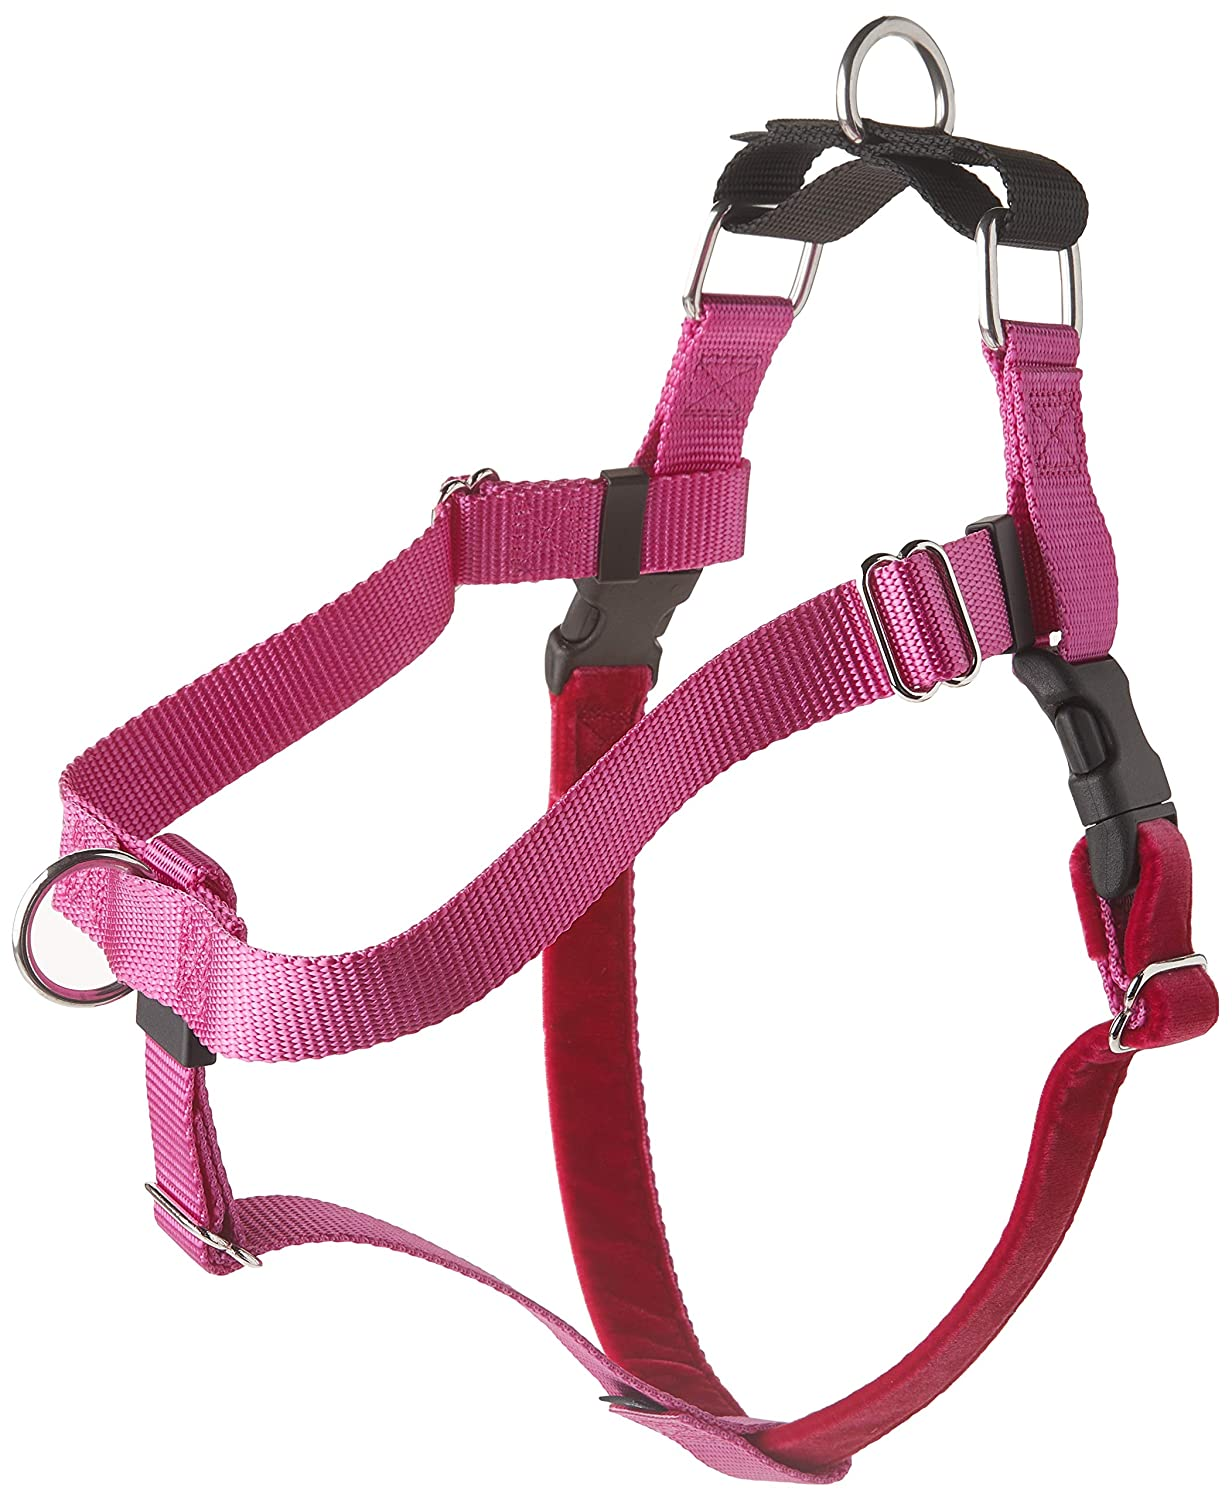 Raspberry Large Raspberry Large 2 Hounds Design Freedom No-Pull Dog Harness, Adjustable Comfortable Control for Dog Walking, Made in USA (Leash Sold Separately) (Large 1 ) (Raspberry)